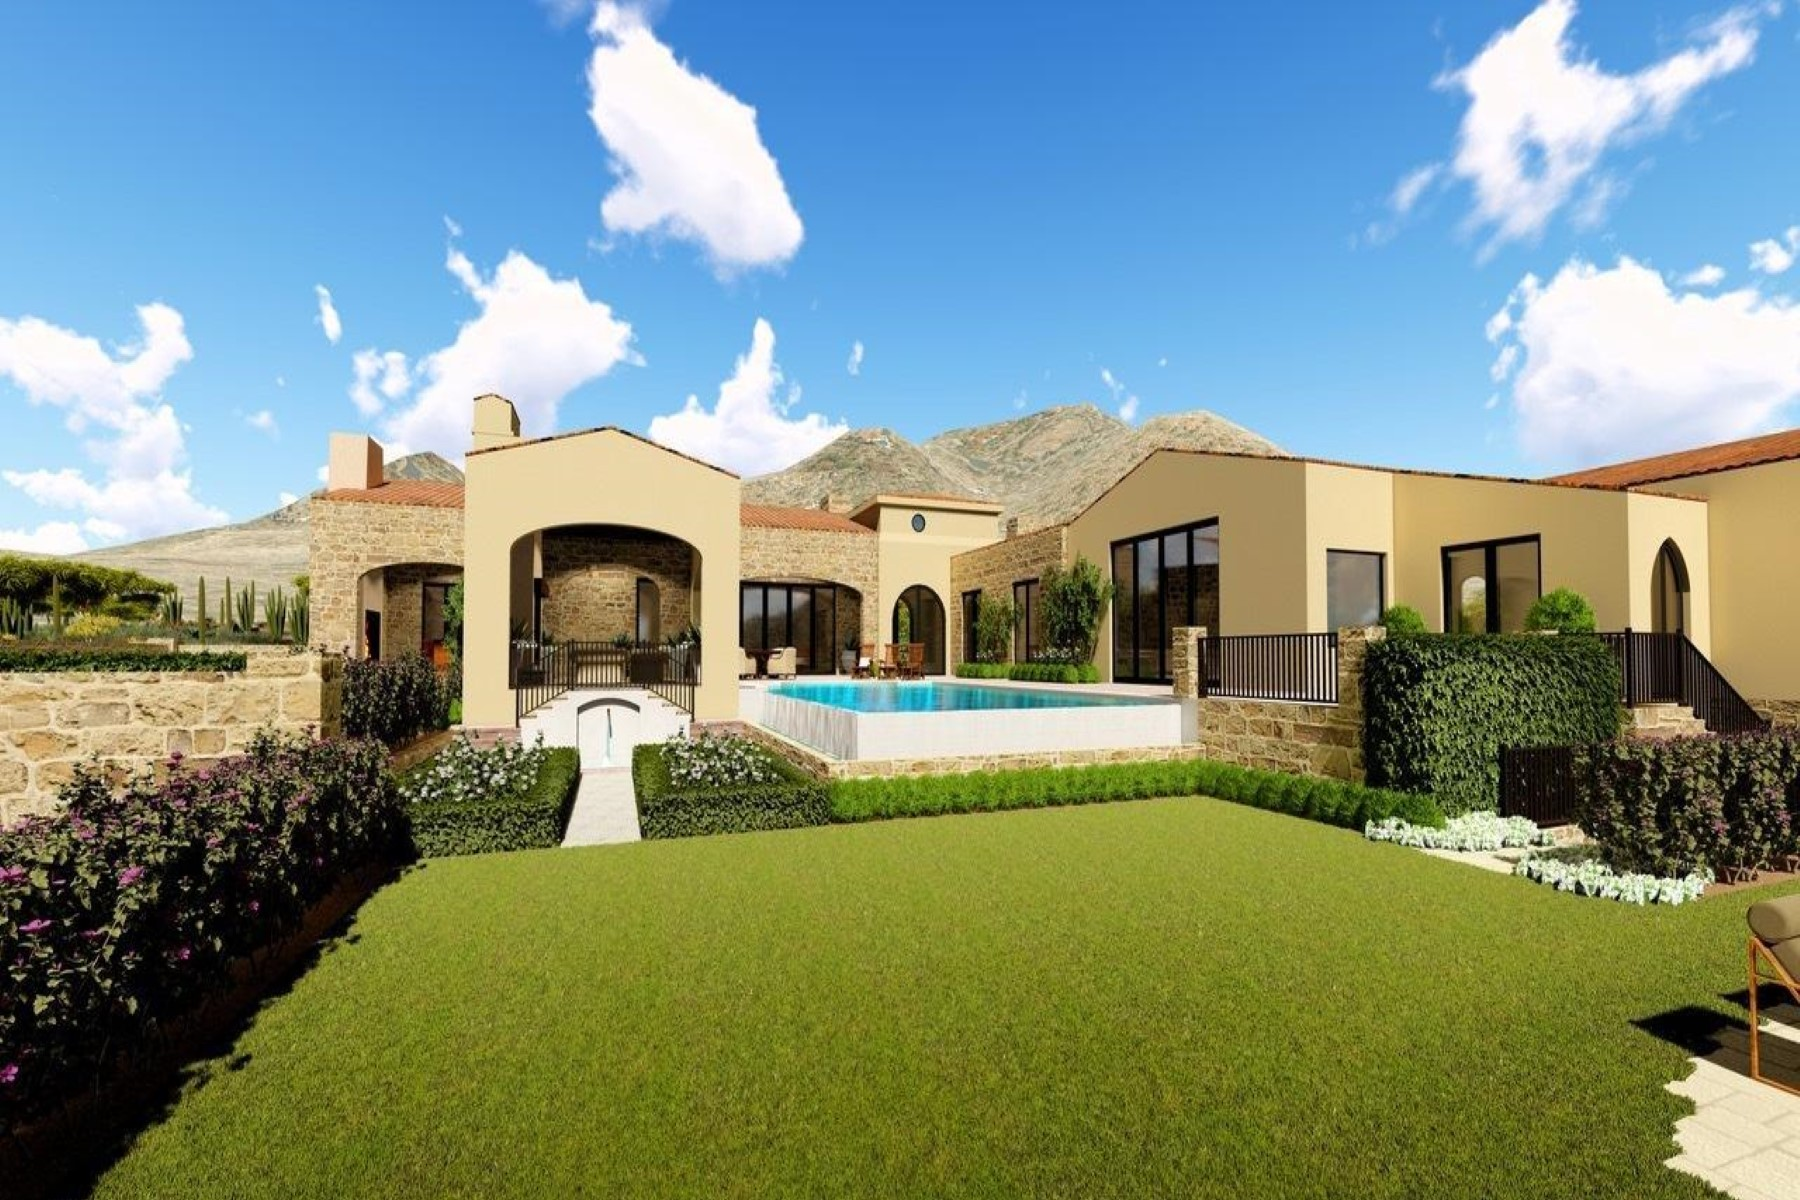 Single Family Homes for Active at Silverleaf 11004 E Feathersong LN Scottsdale, Arizona 85255 United States